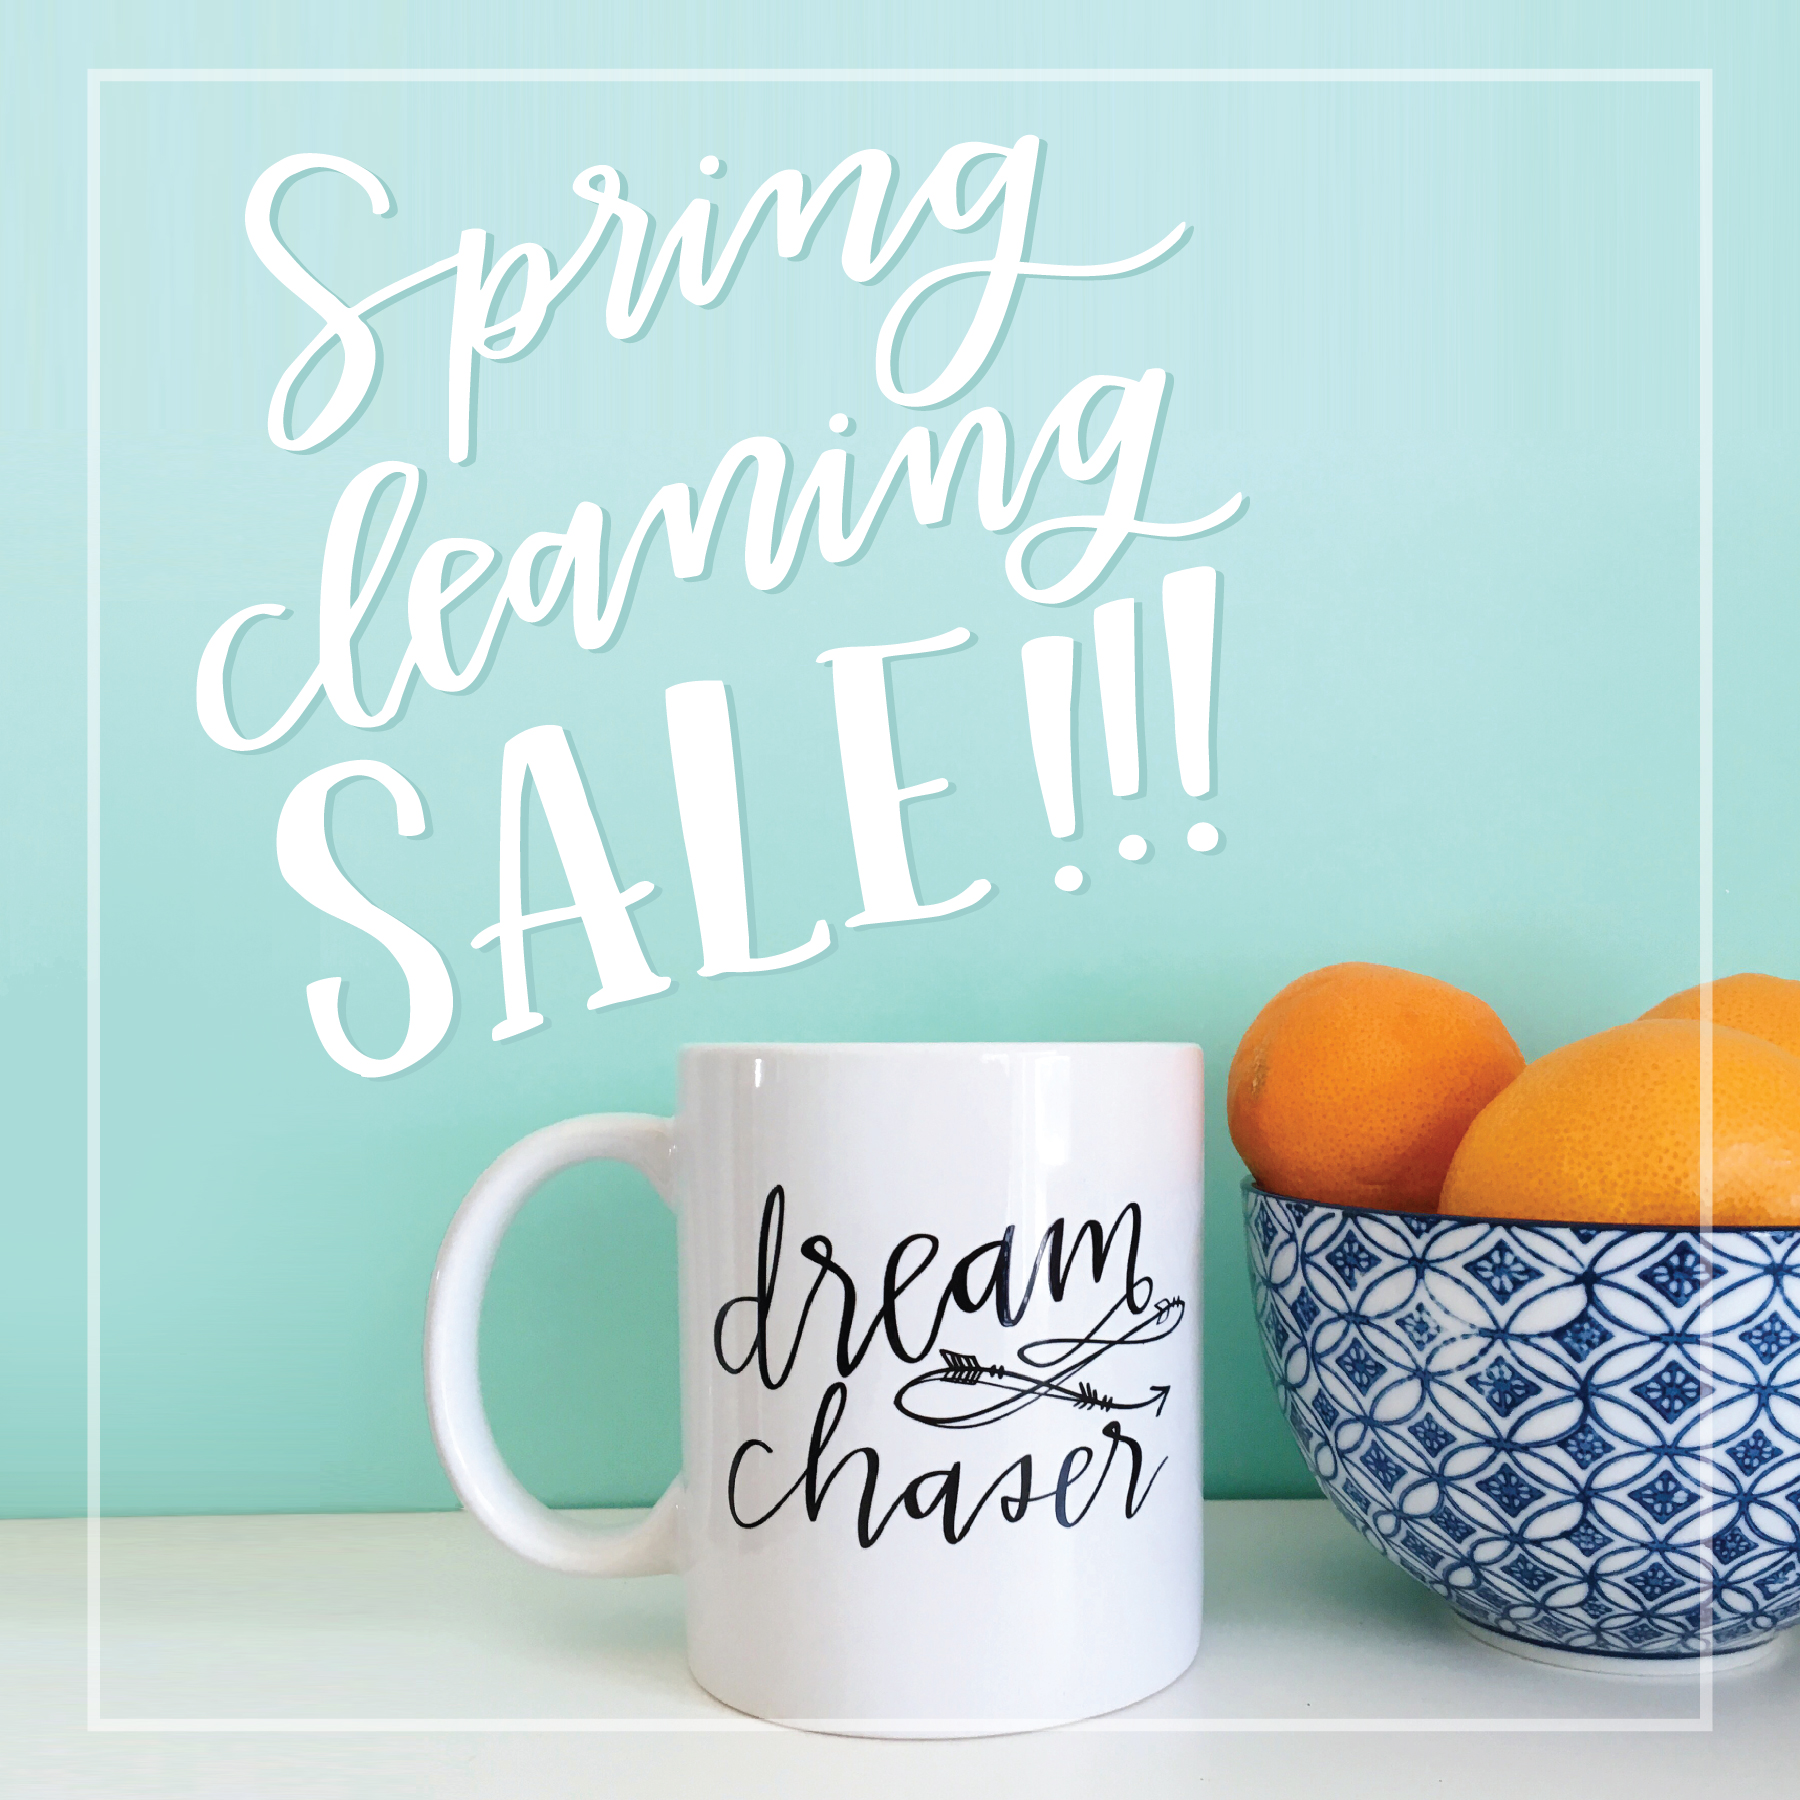 Lettered Life Spring Cleaning Sale!